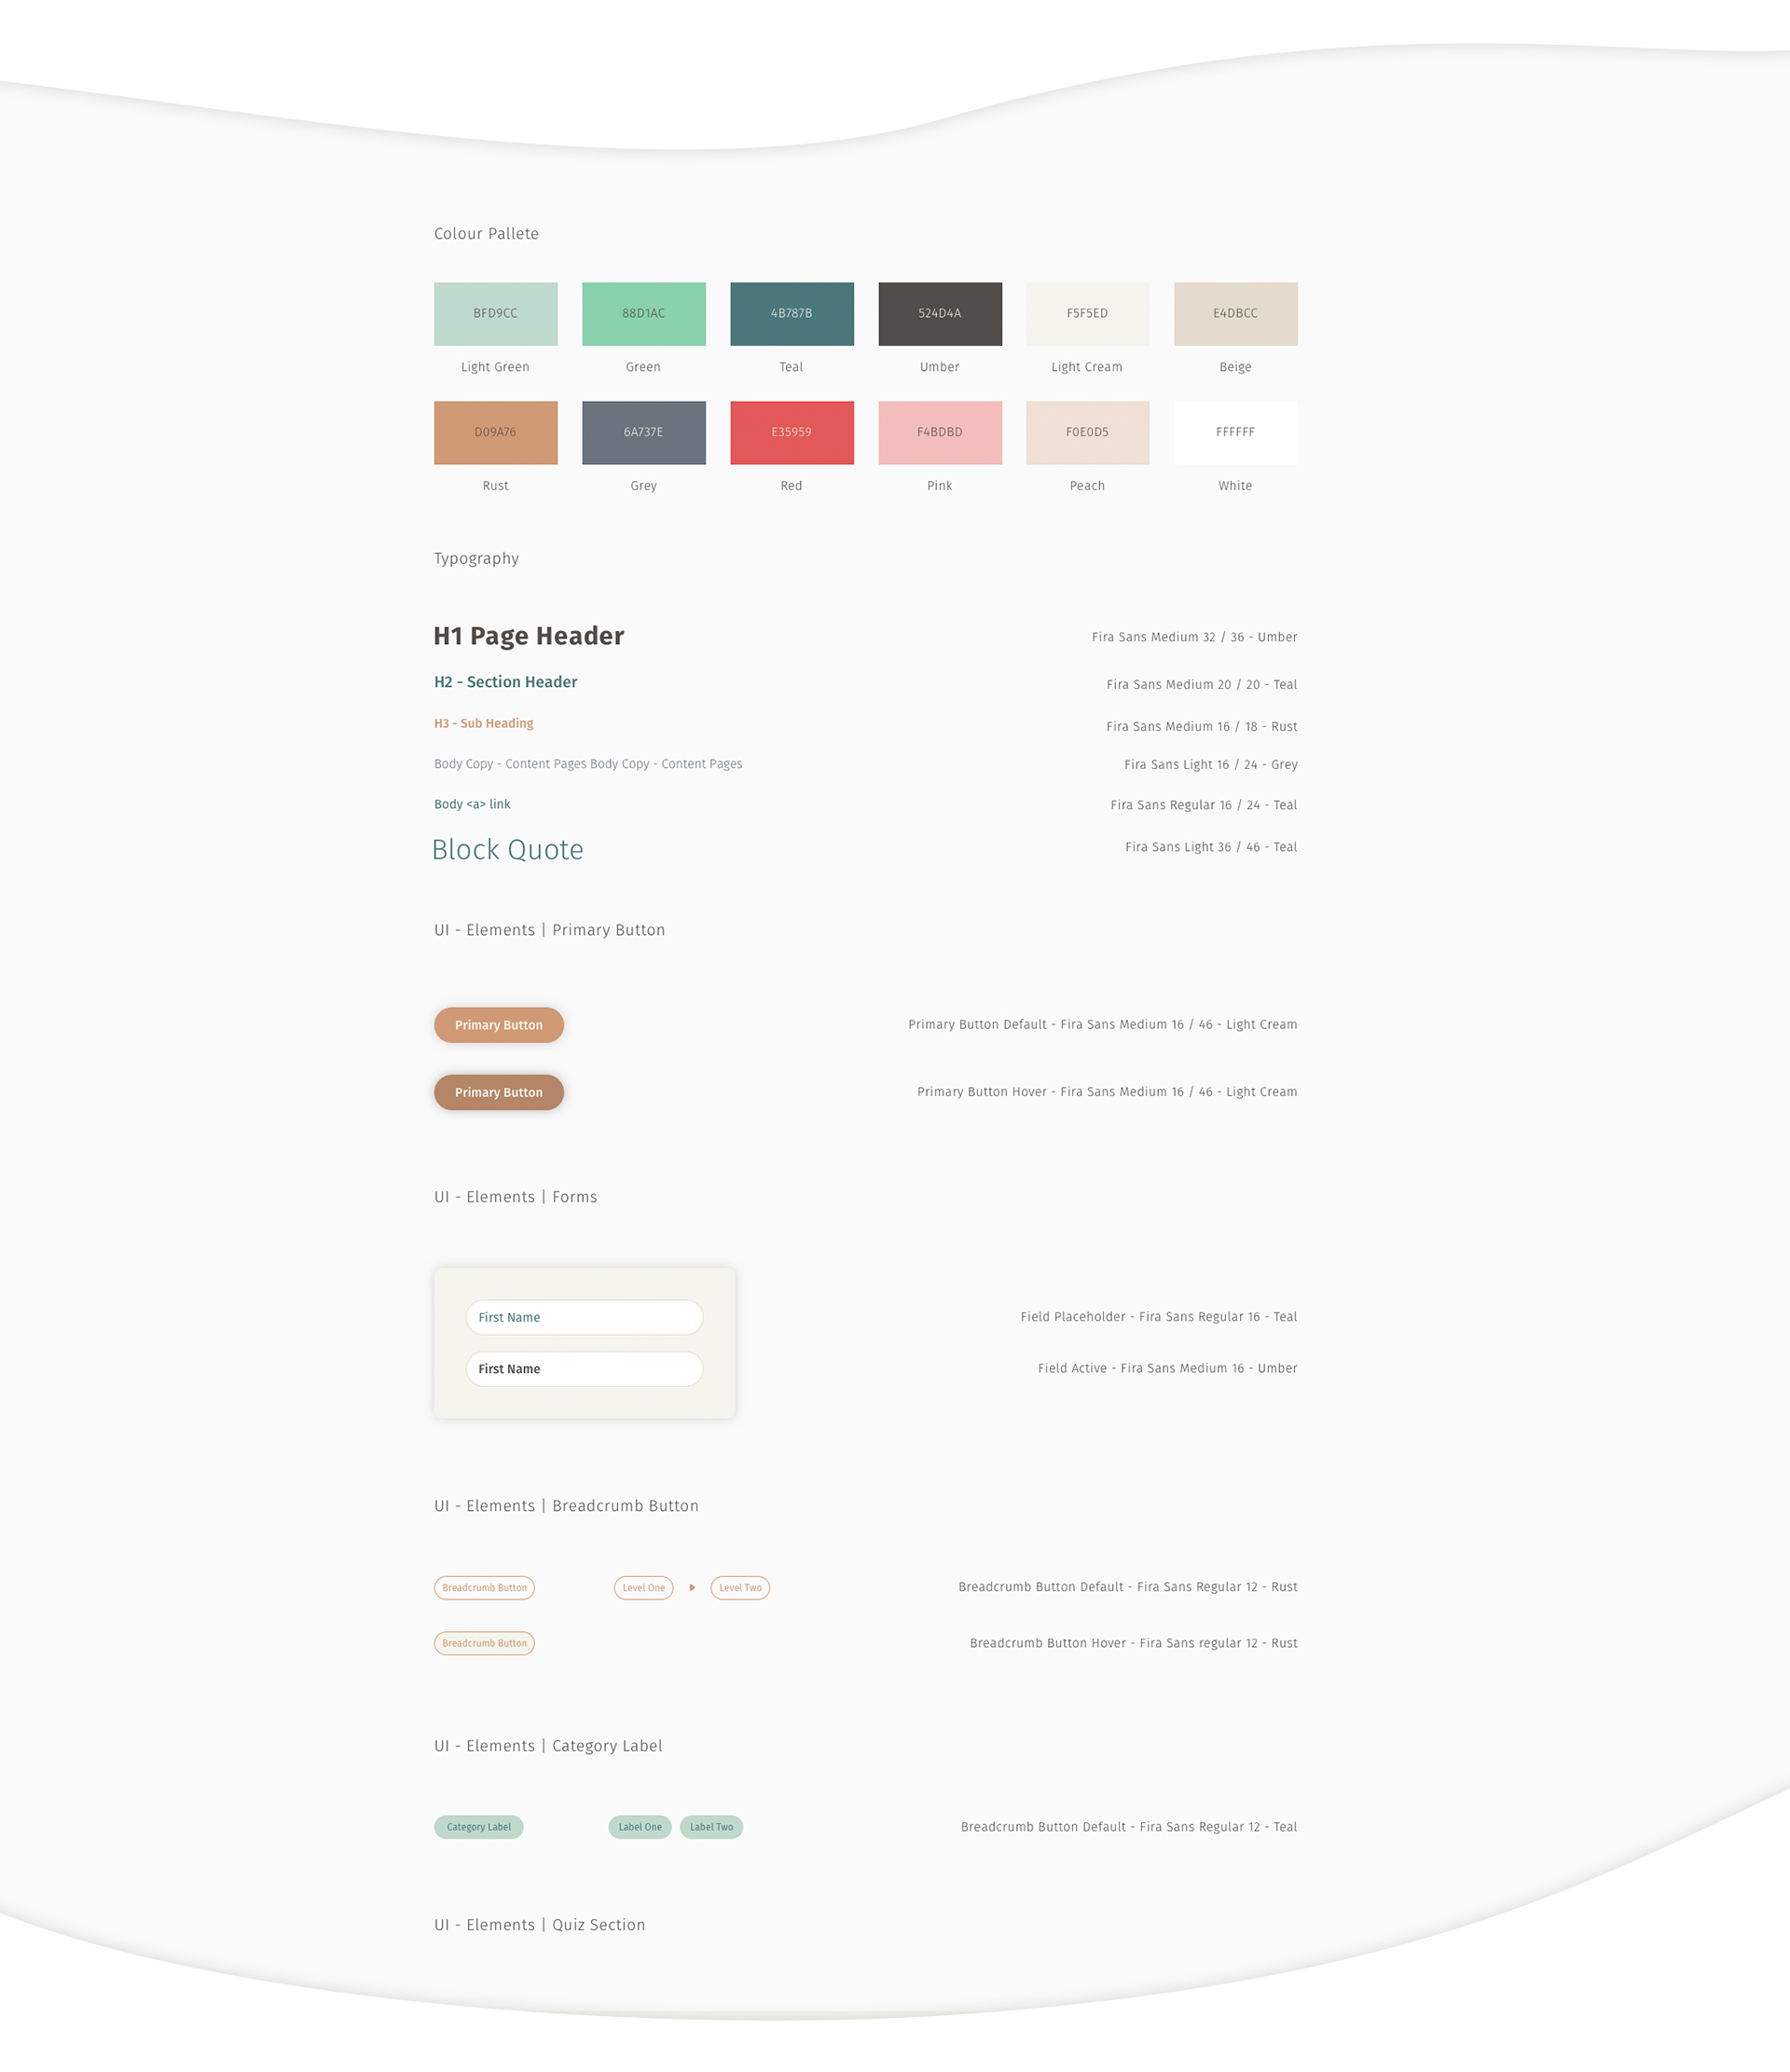 Speakout toolkit user interface style guide